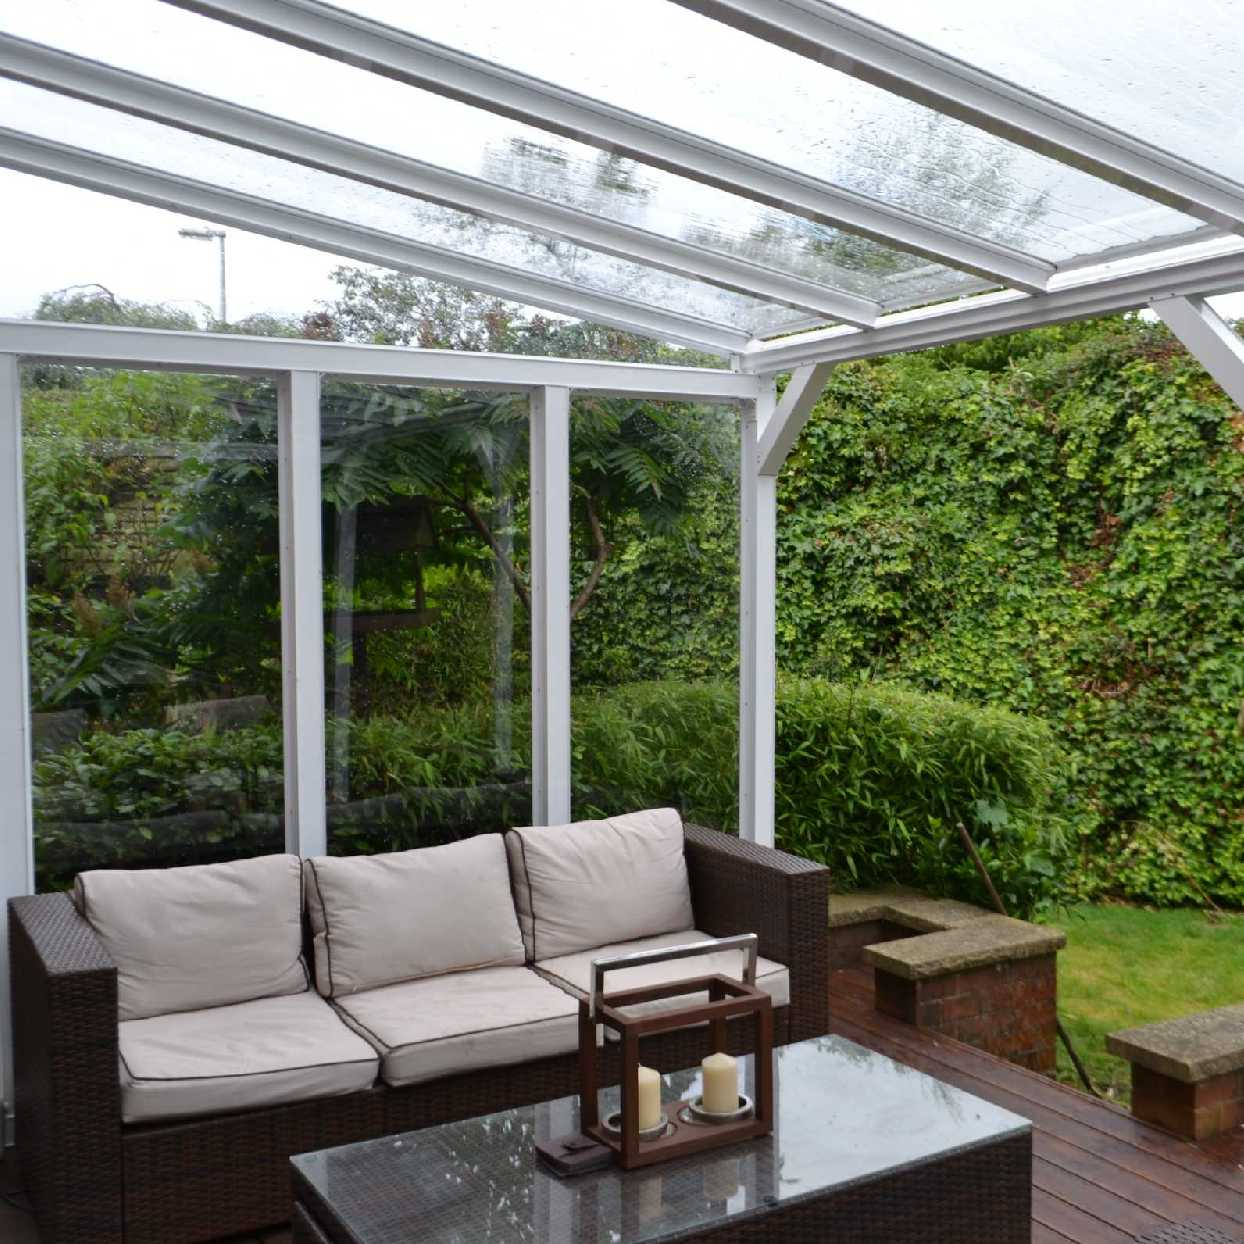 Omega Smart White Lean-To Canopy UNGLAZED for 6mm Glazing - 4.2m (W) x 2.0m (P), (3) Supporting Posts